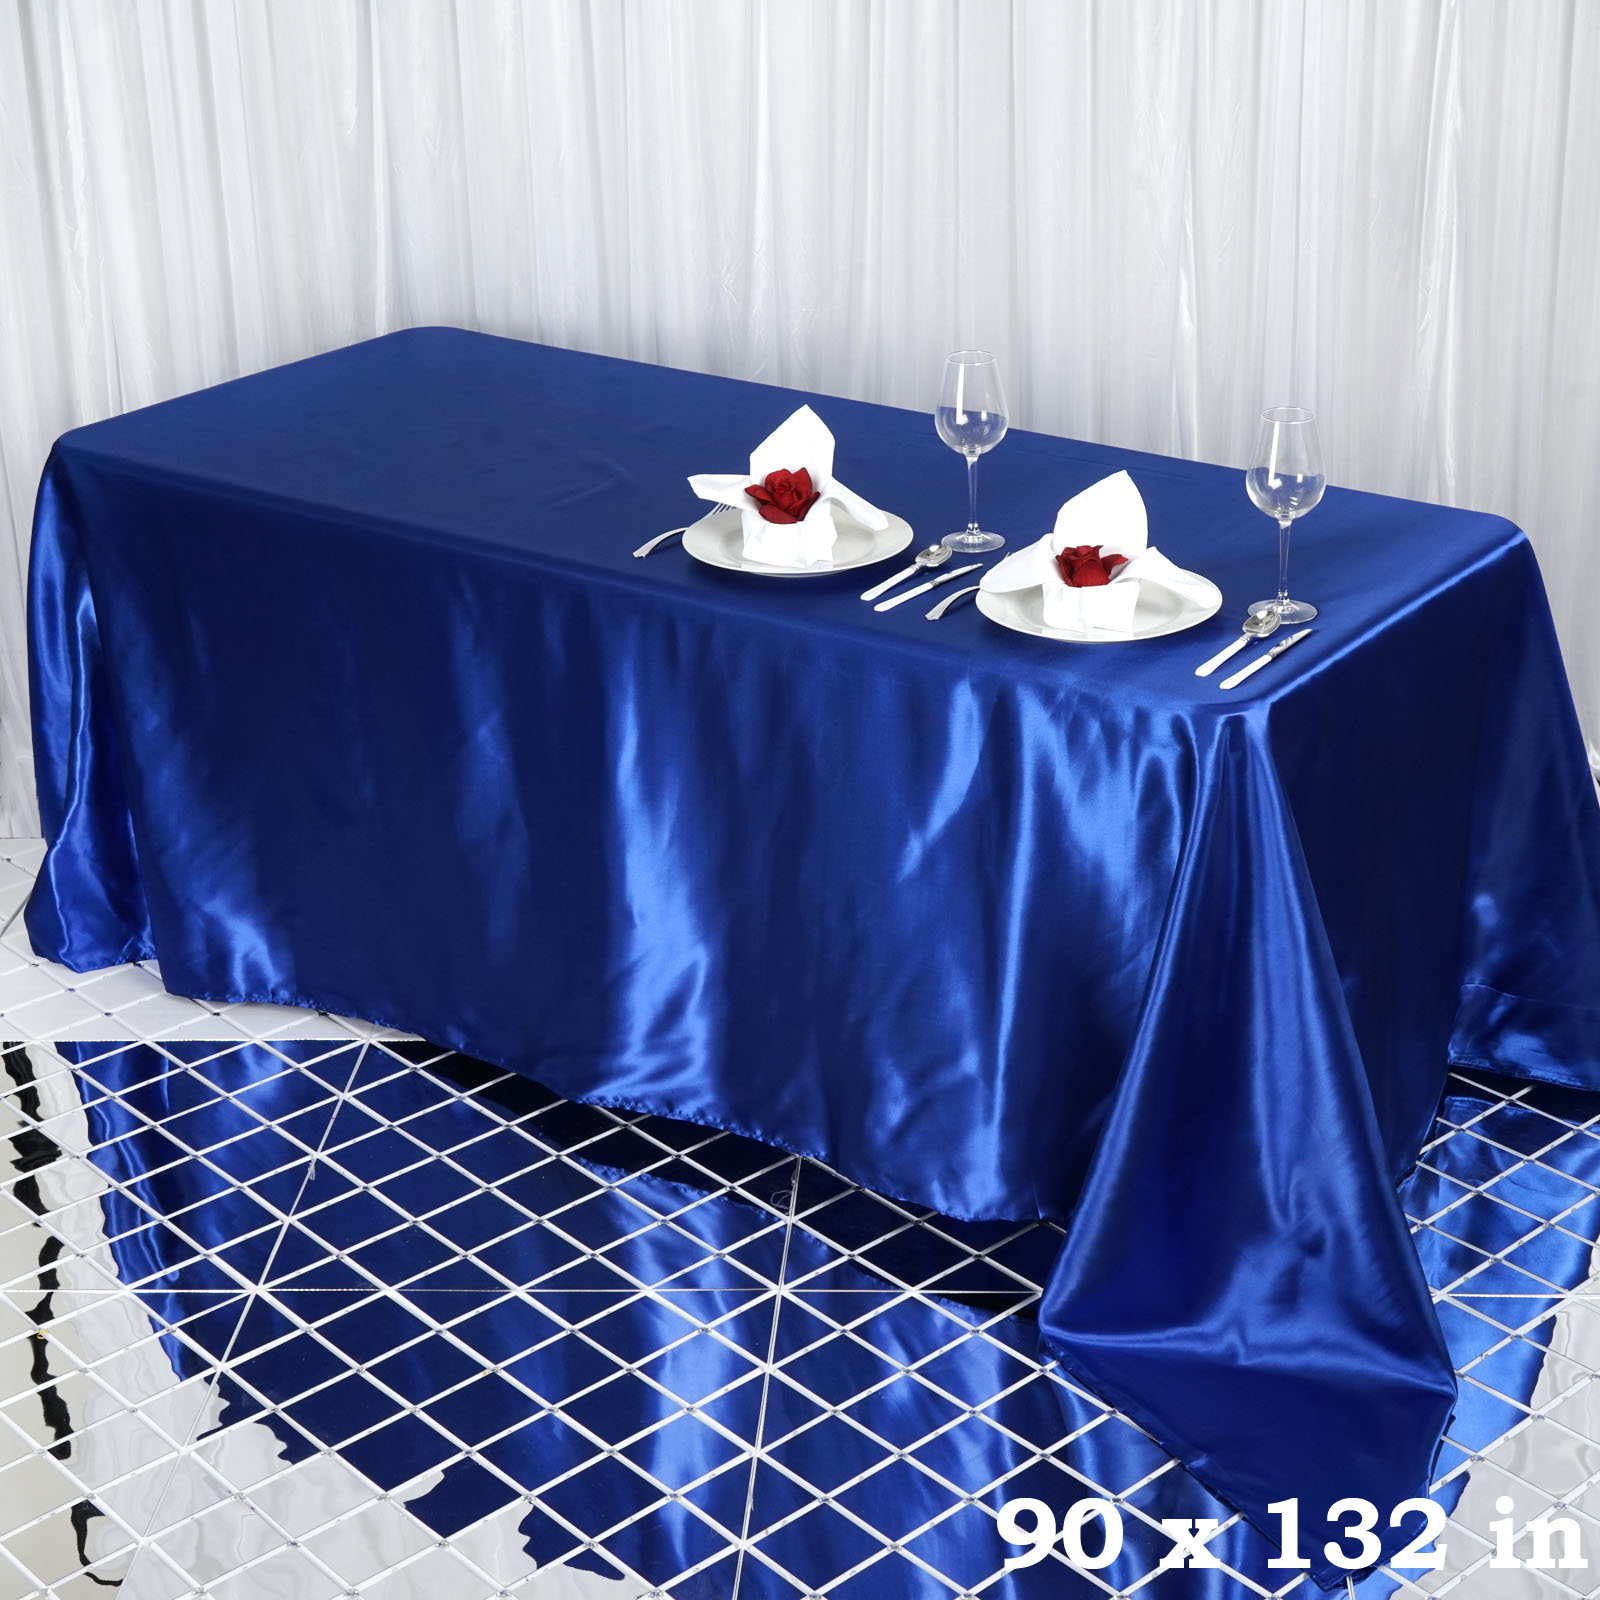 90x132-034-Rectangle-Satin-Tablecloth-For-Wedding-Party-Banquet-Events-Decoration thumbnail 71